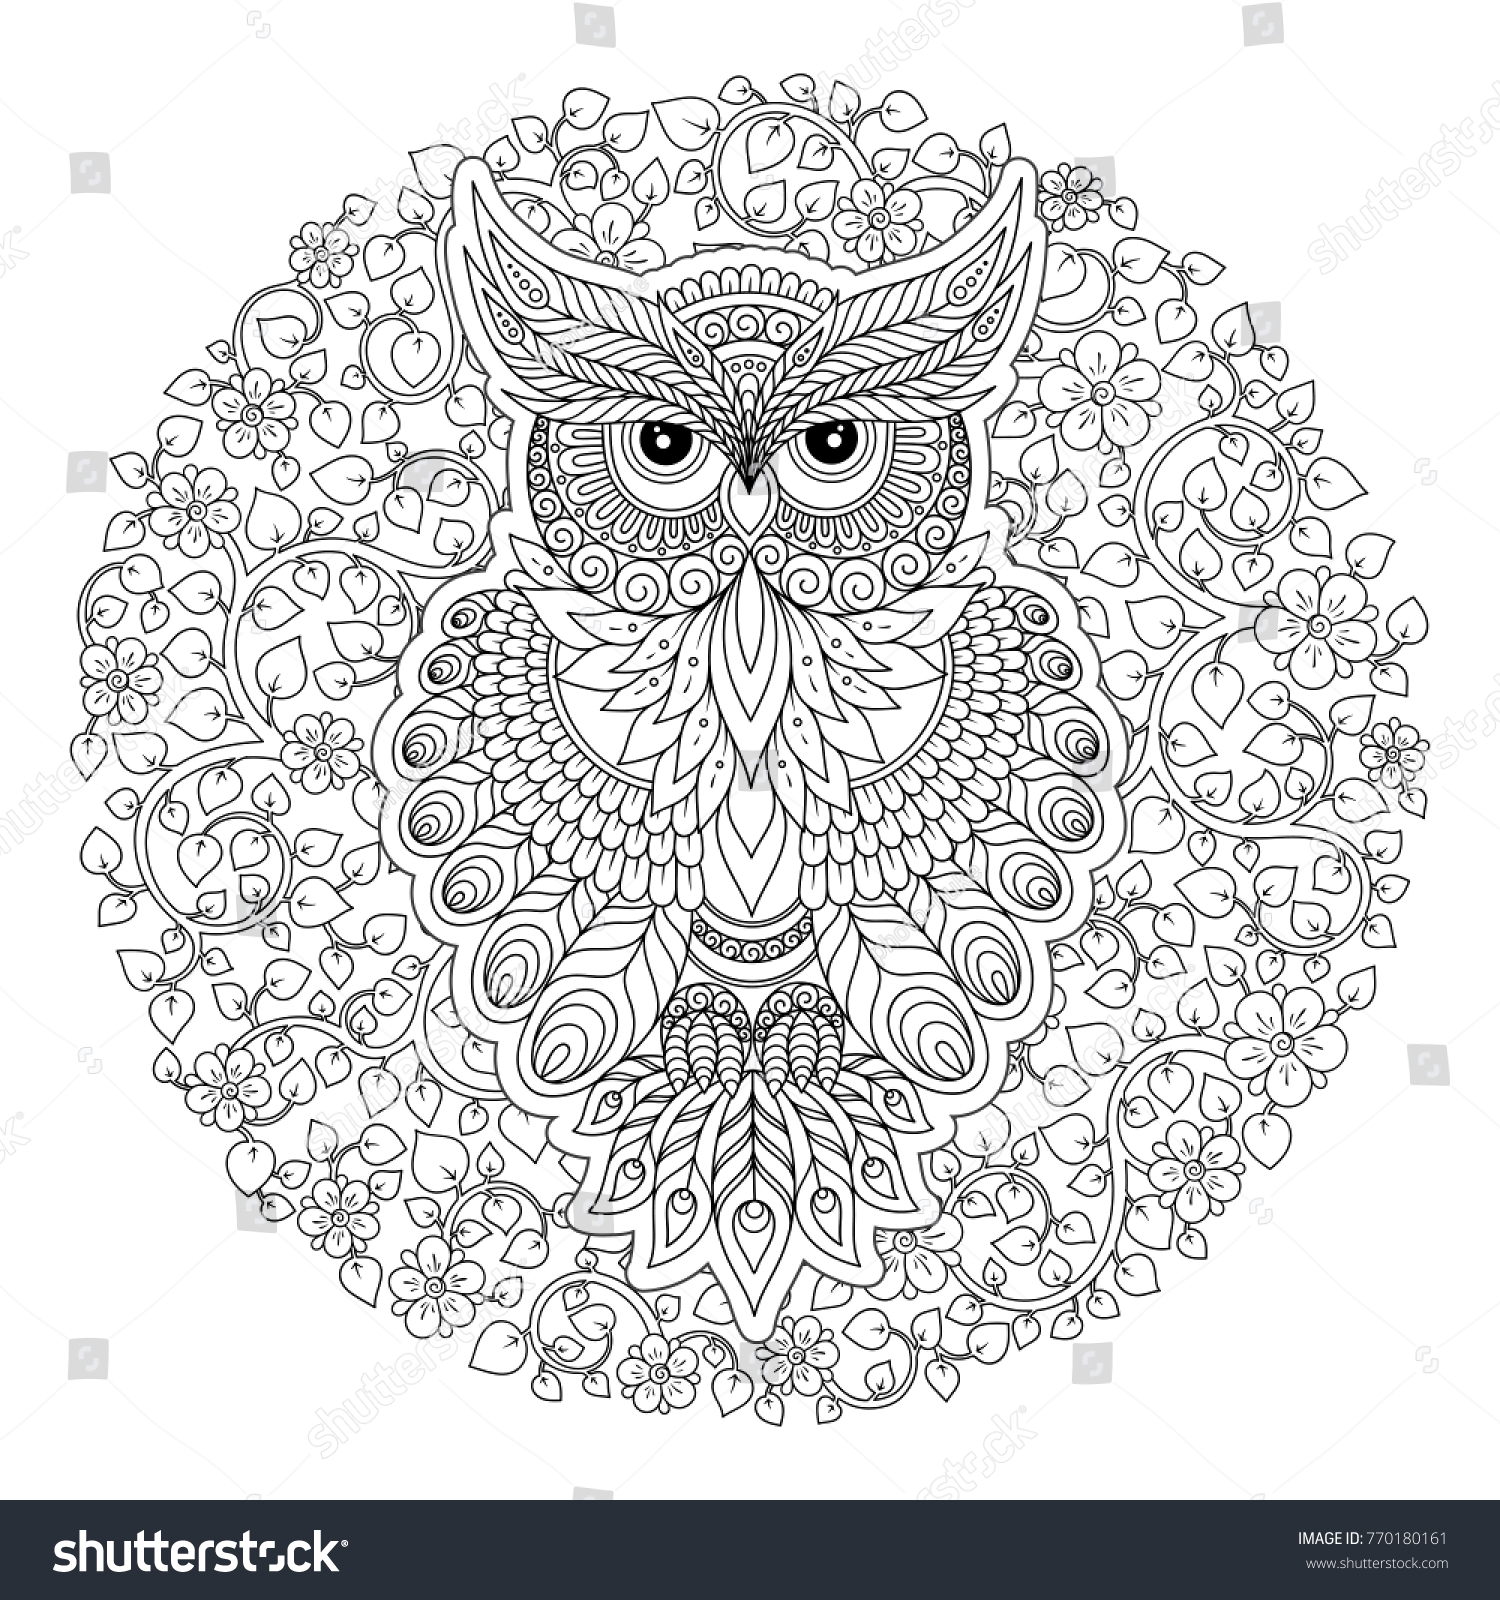 Decorative Owl Adult Antistress Coloring Page Stock Illustration ...